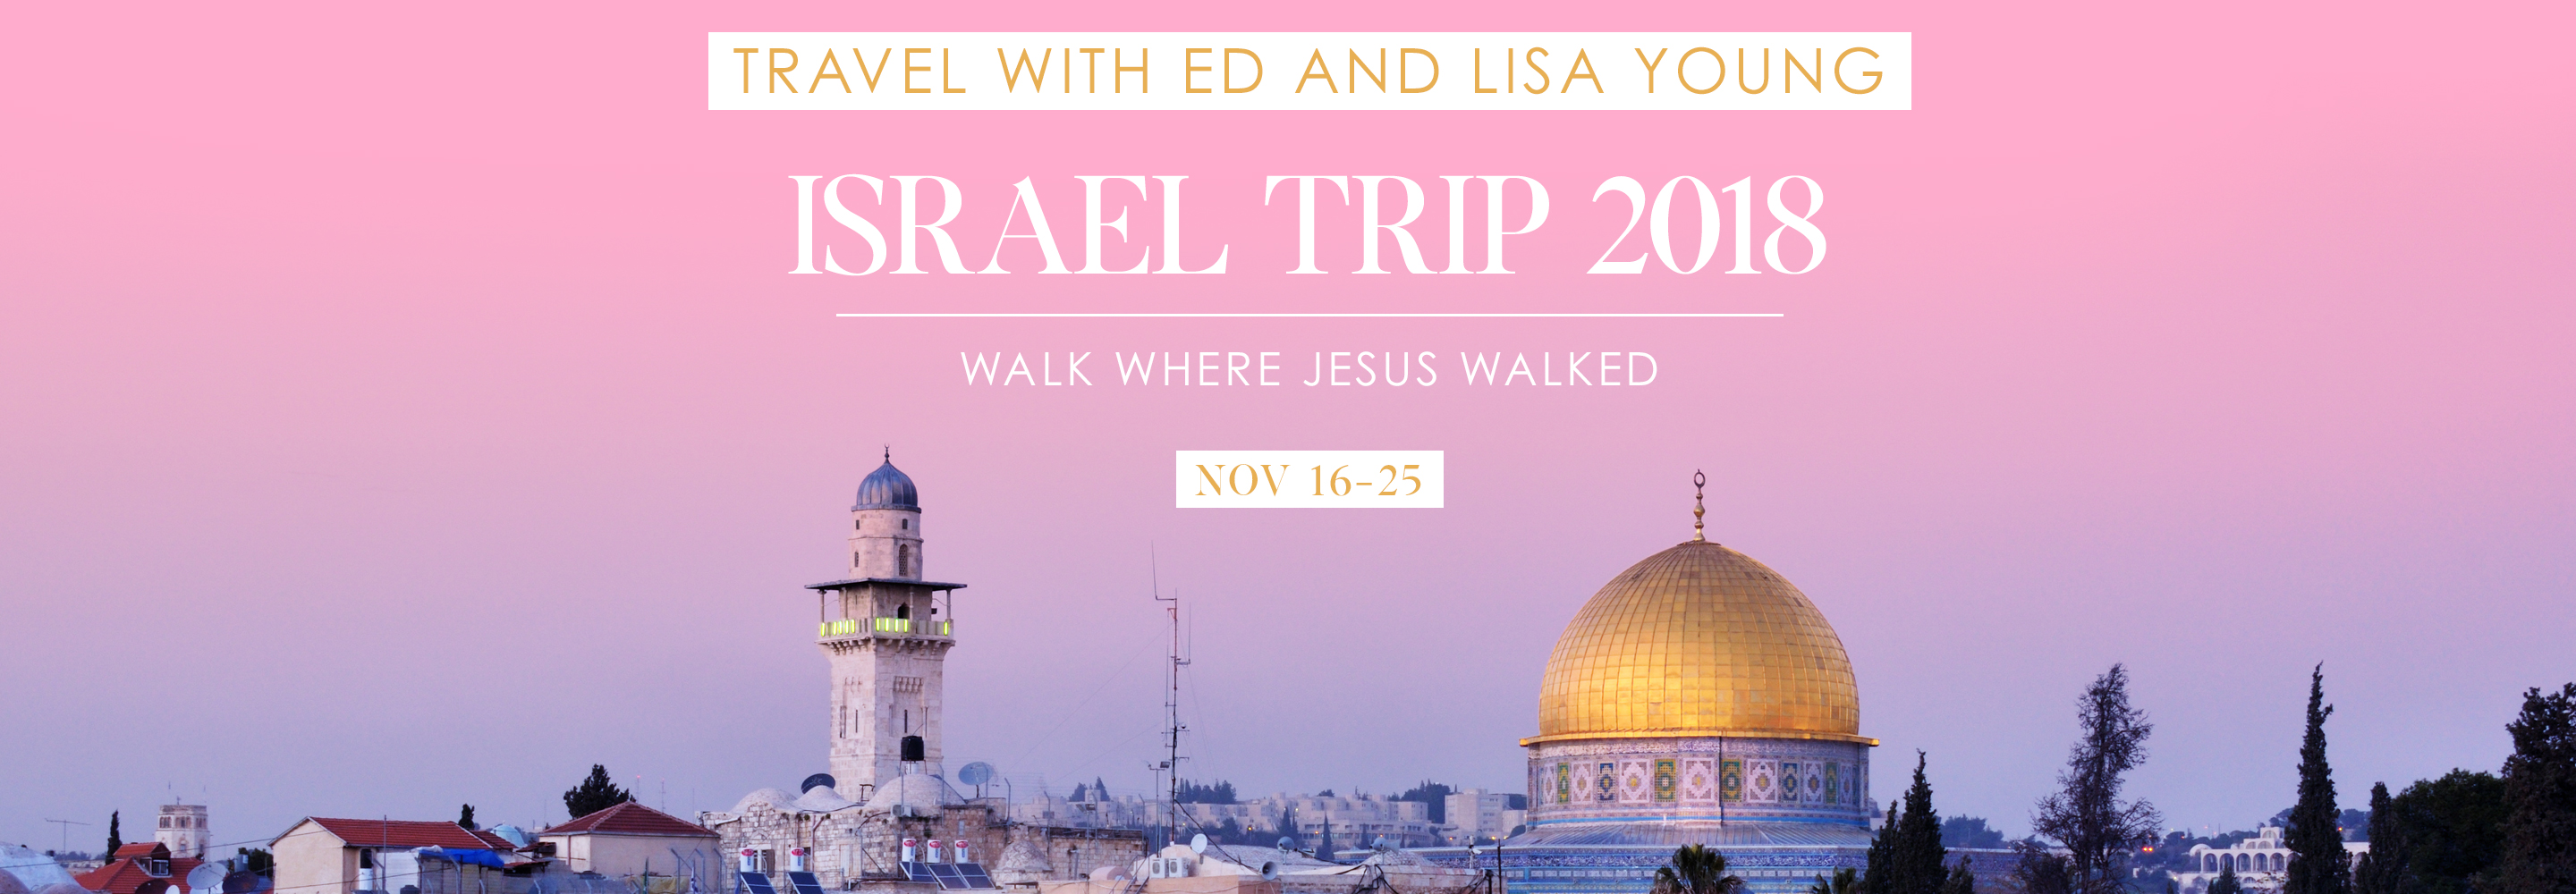 Is It Safe To Travel To Israel